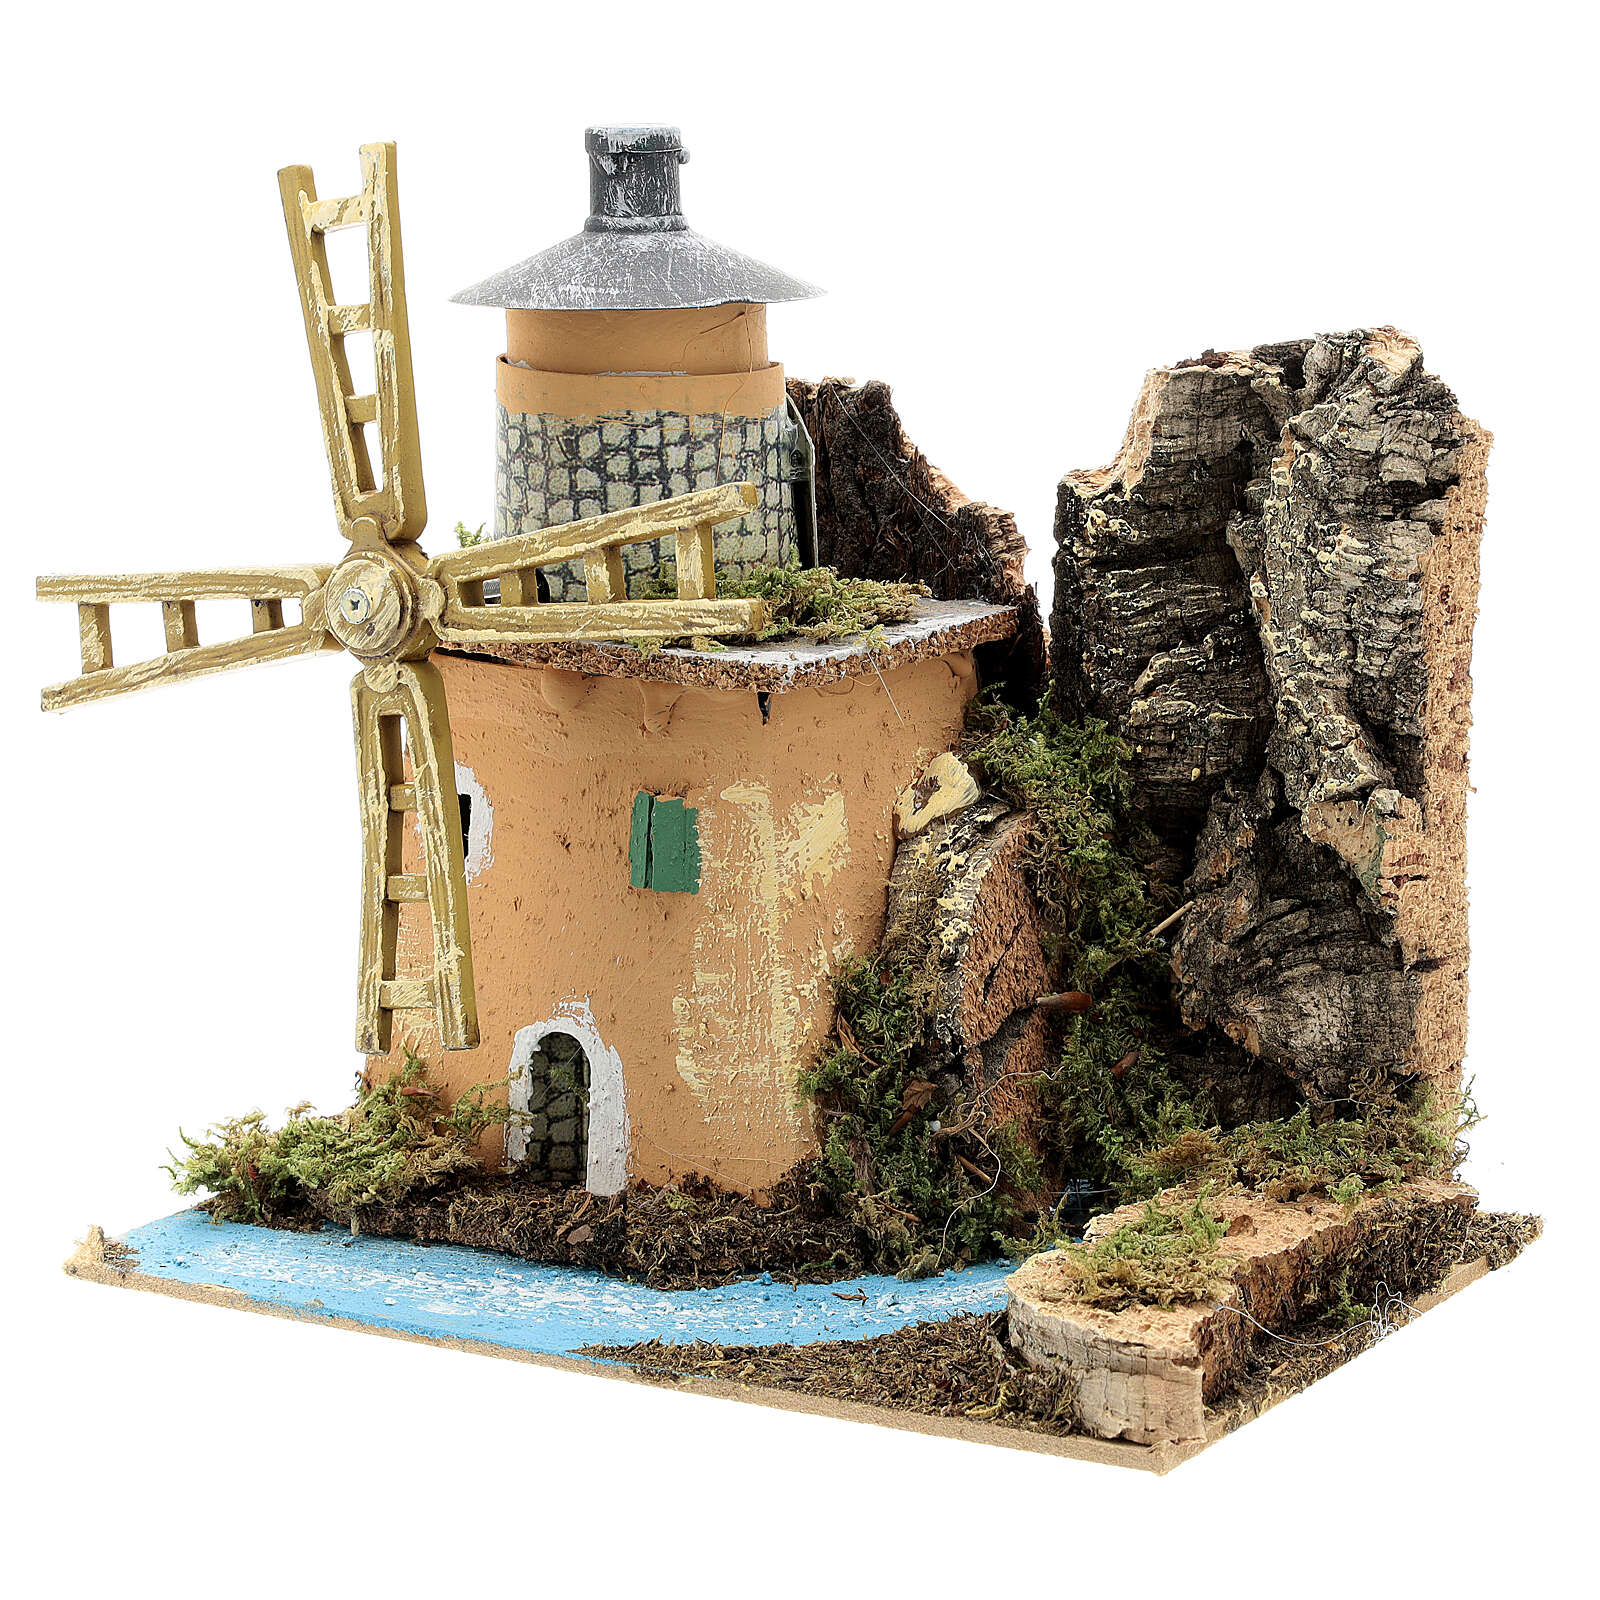 Animated windmill figurine 8-10 cm on a river 20x20x15 cm 4